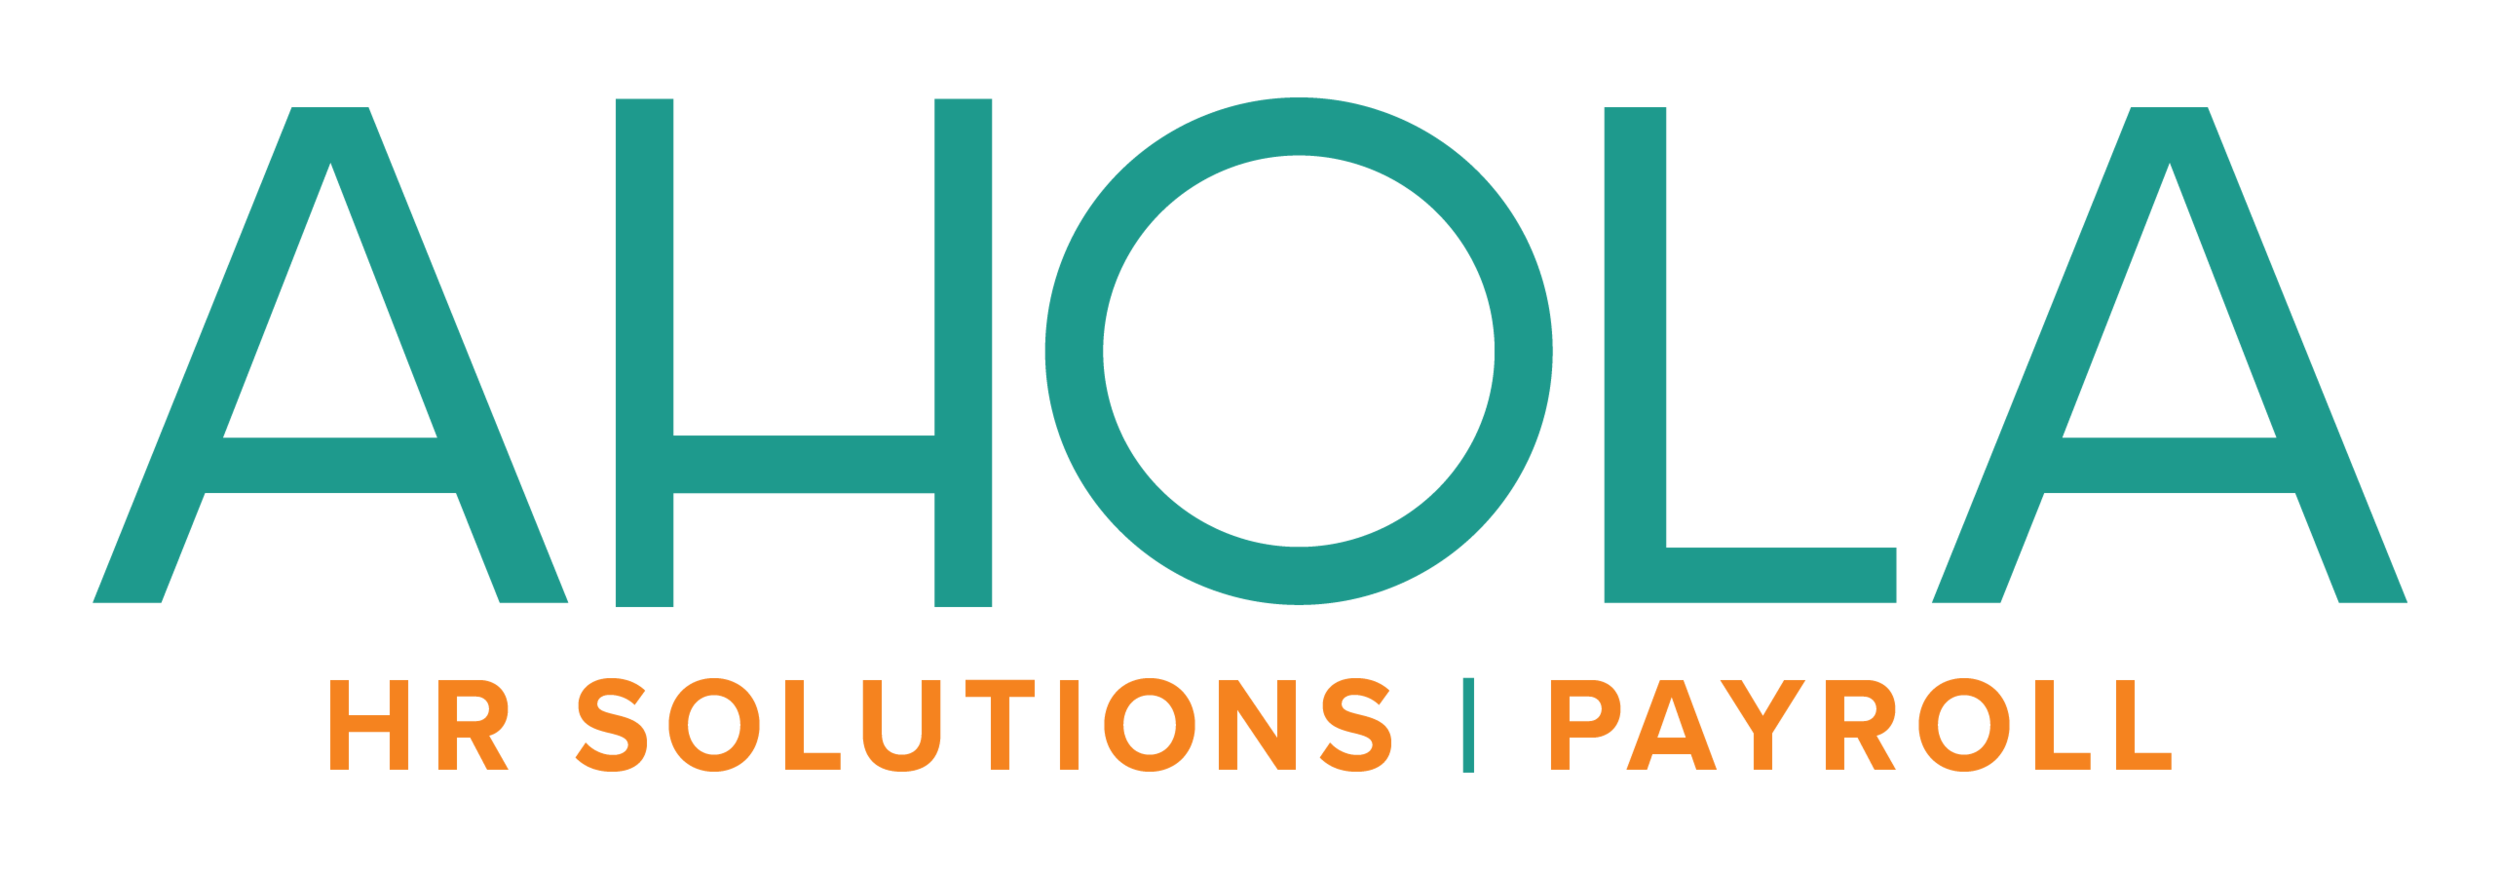 AHOLA_Logo_HRSolutions-Payroll[1].png